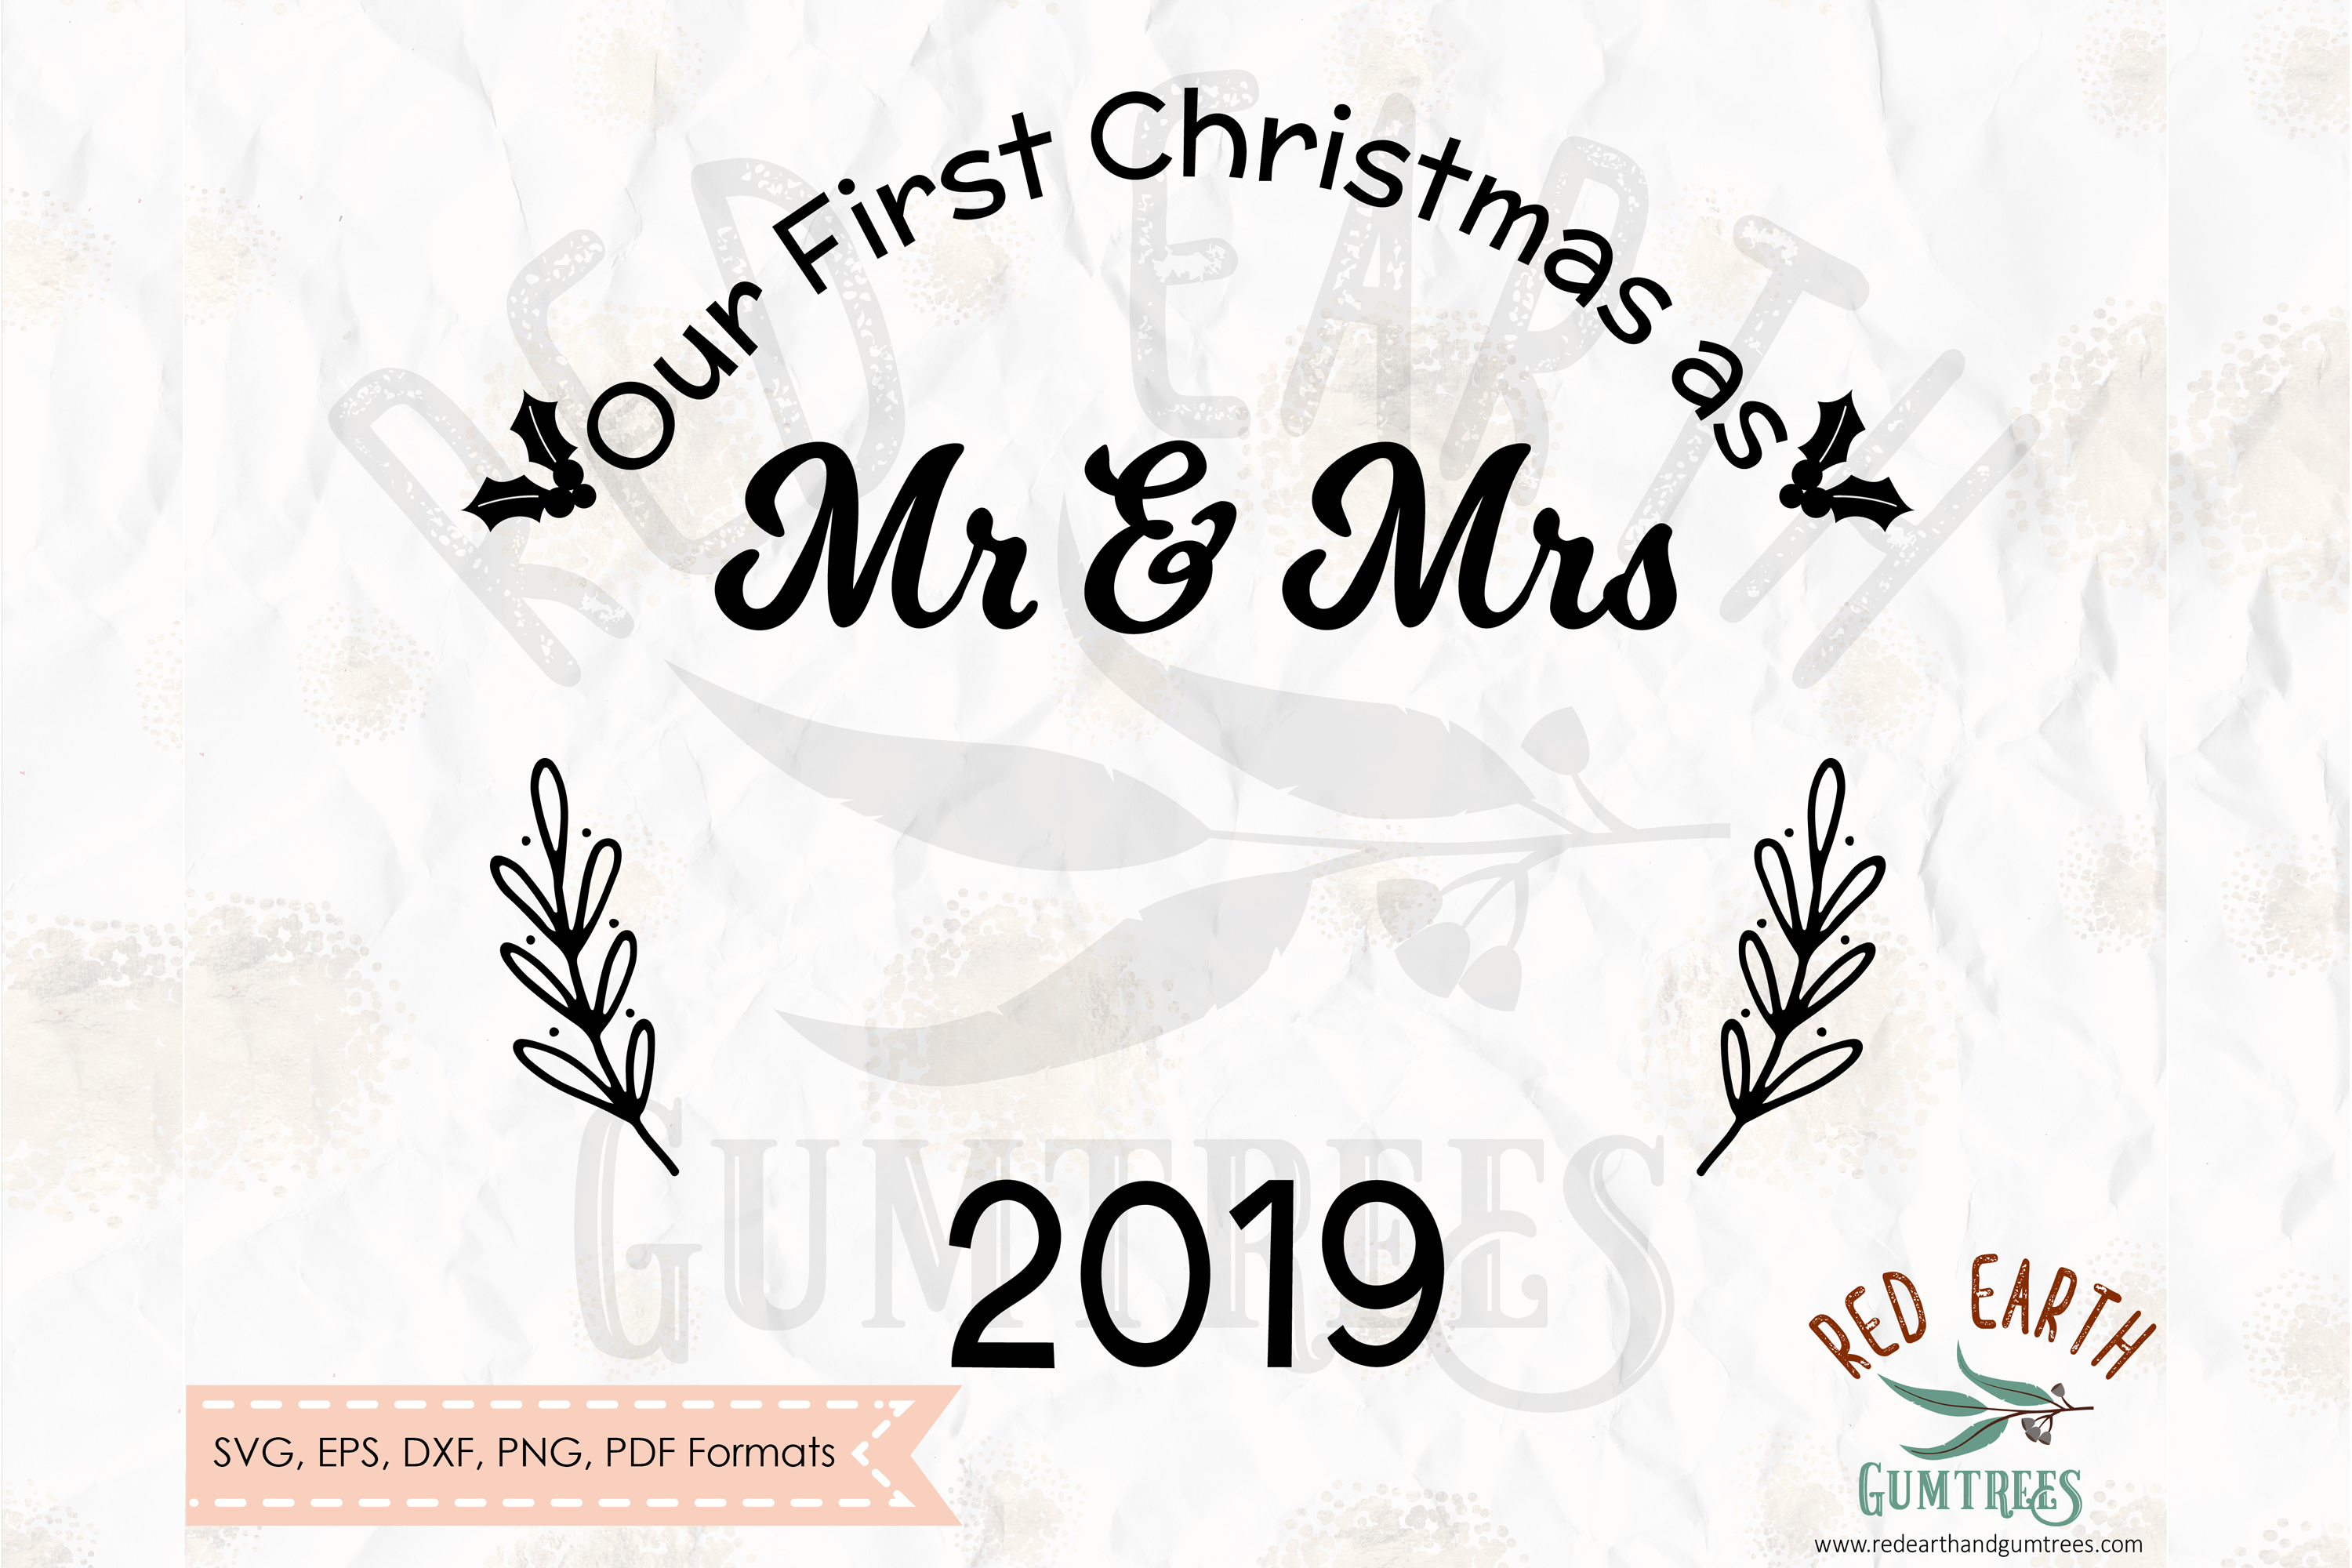 Our First Christmas as mr and Mrs, Newlyweds SVG,DXF,PNG,EPS example image 2